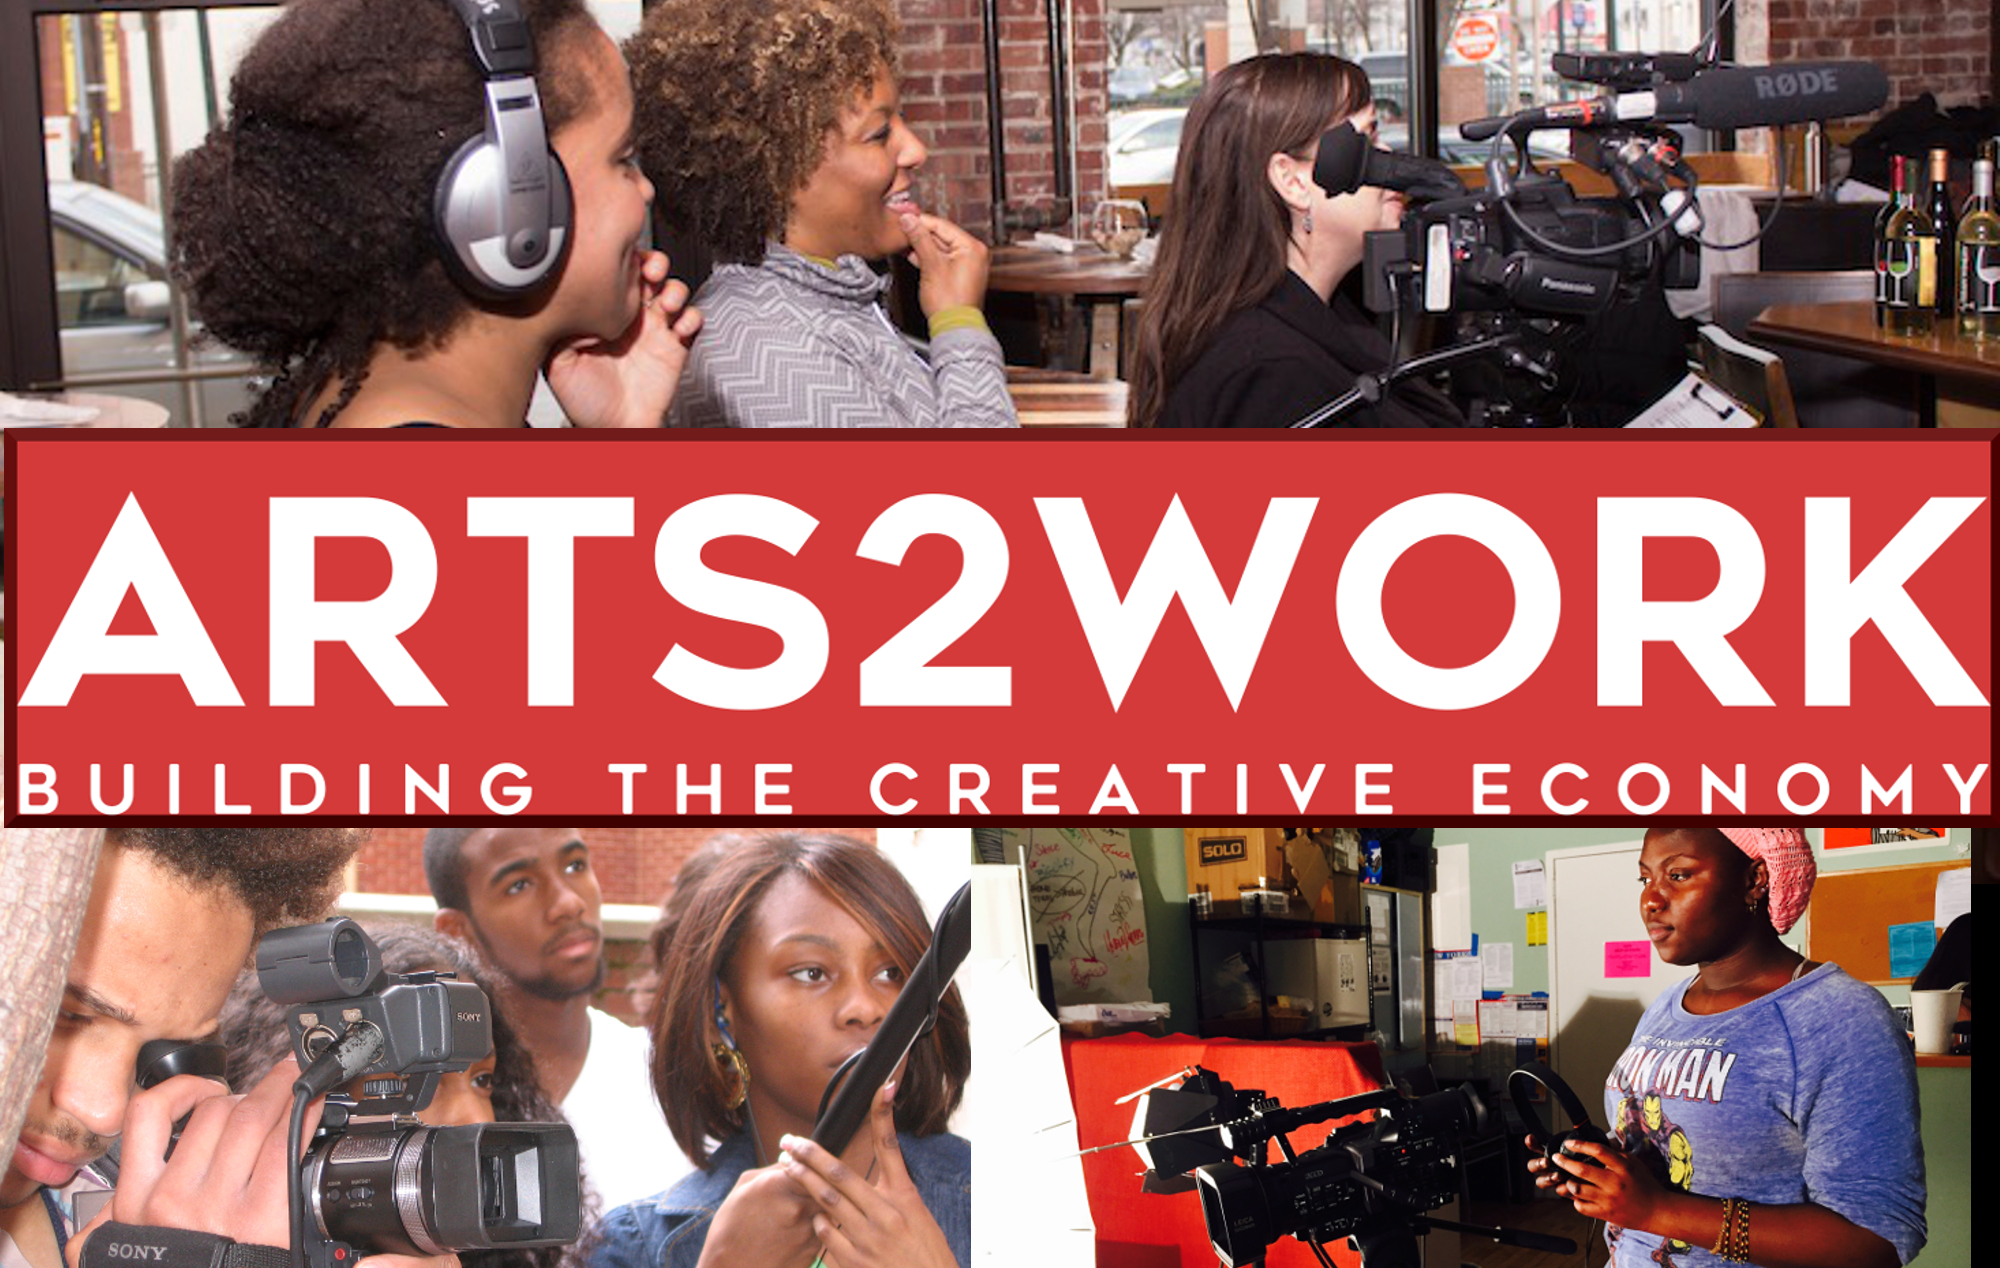 Arts2Work: Building the Creative Economy